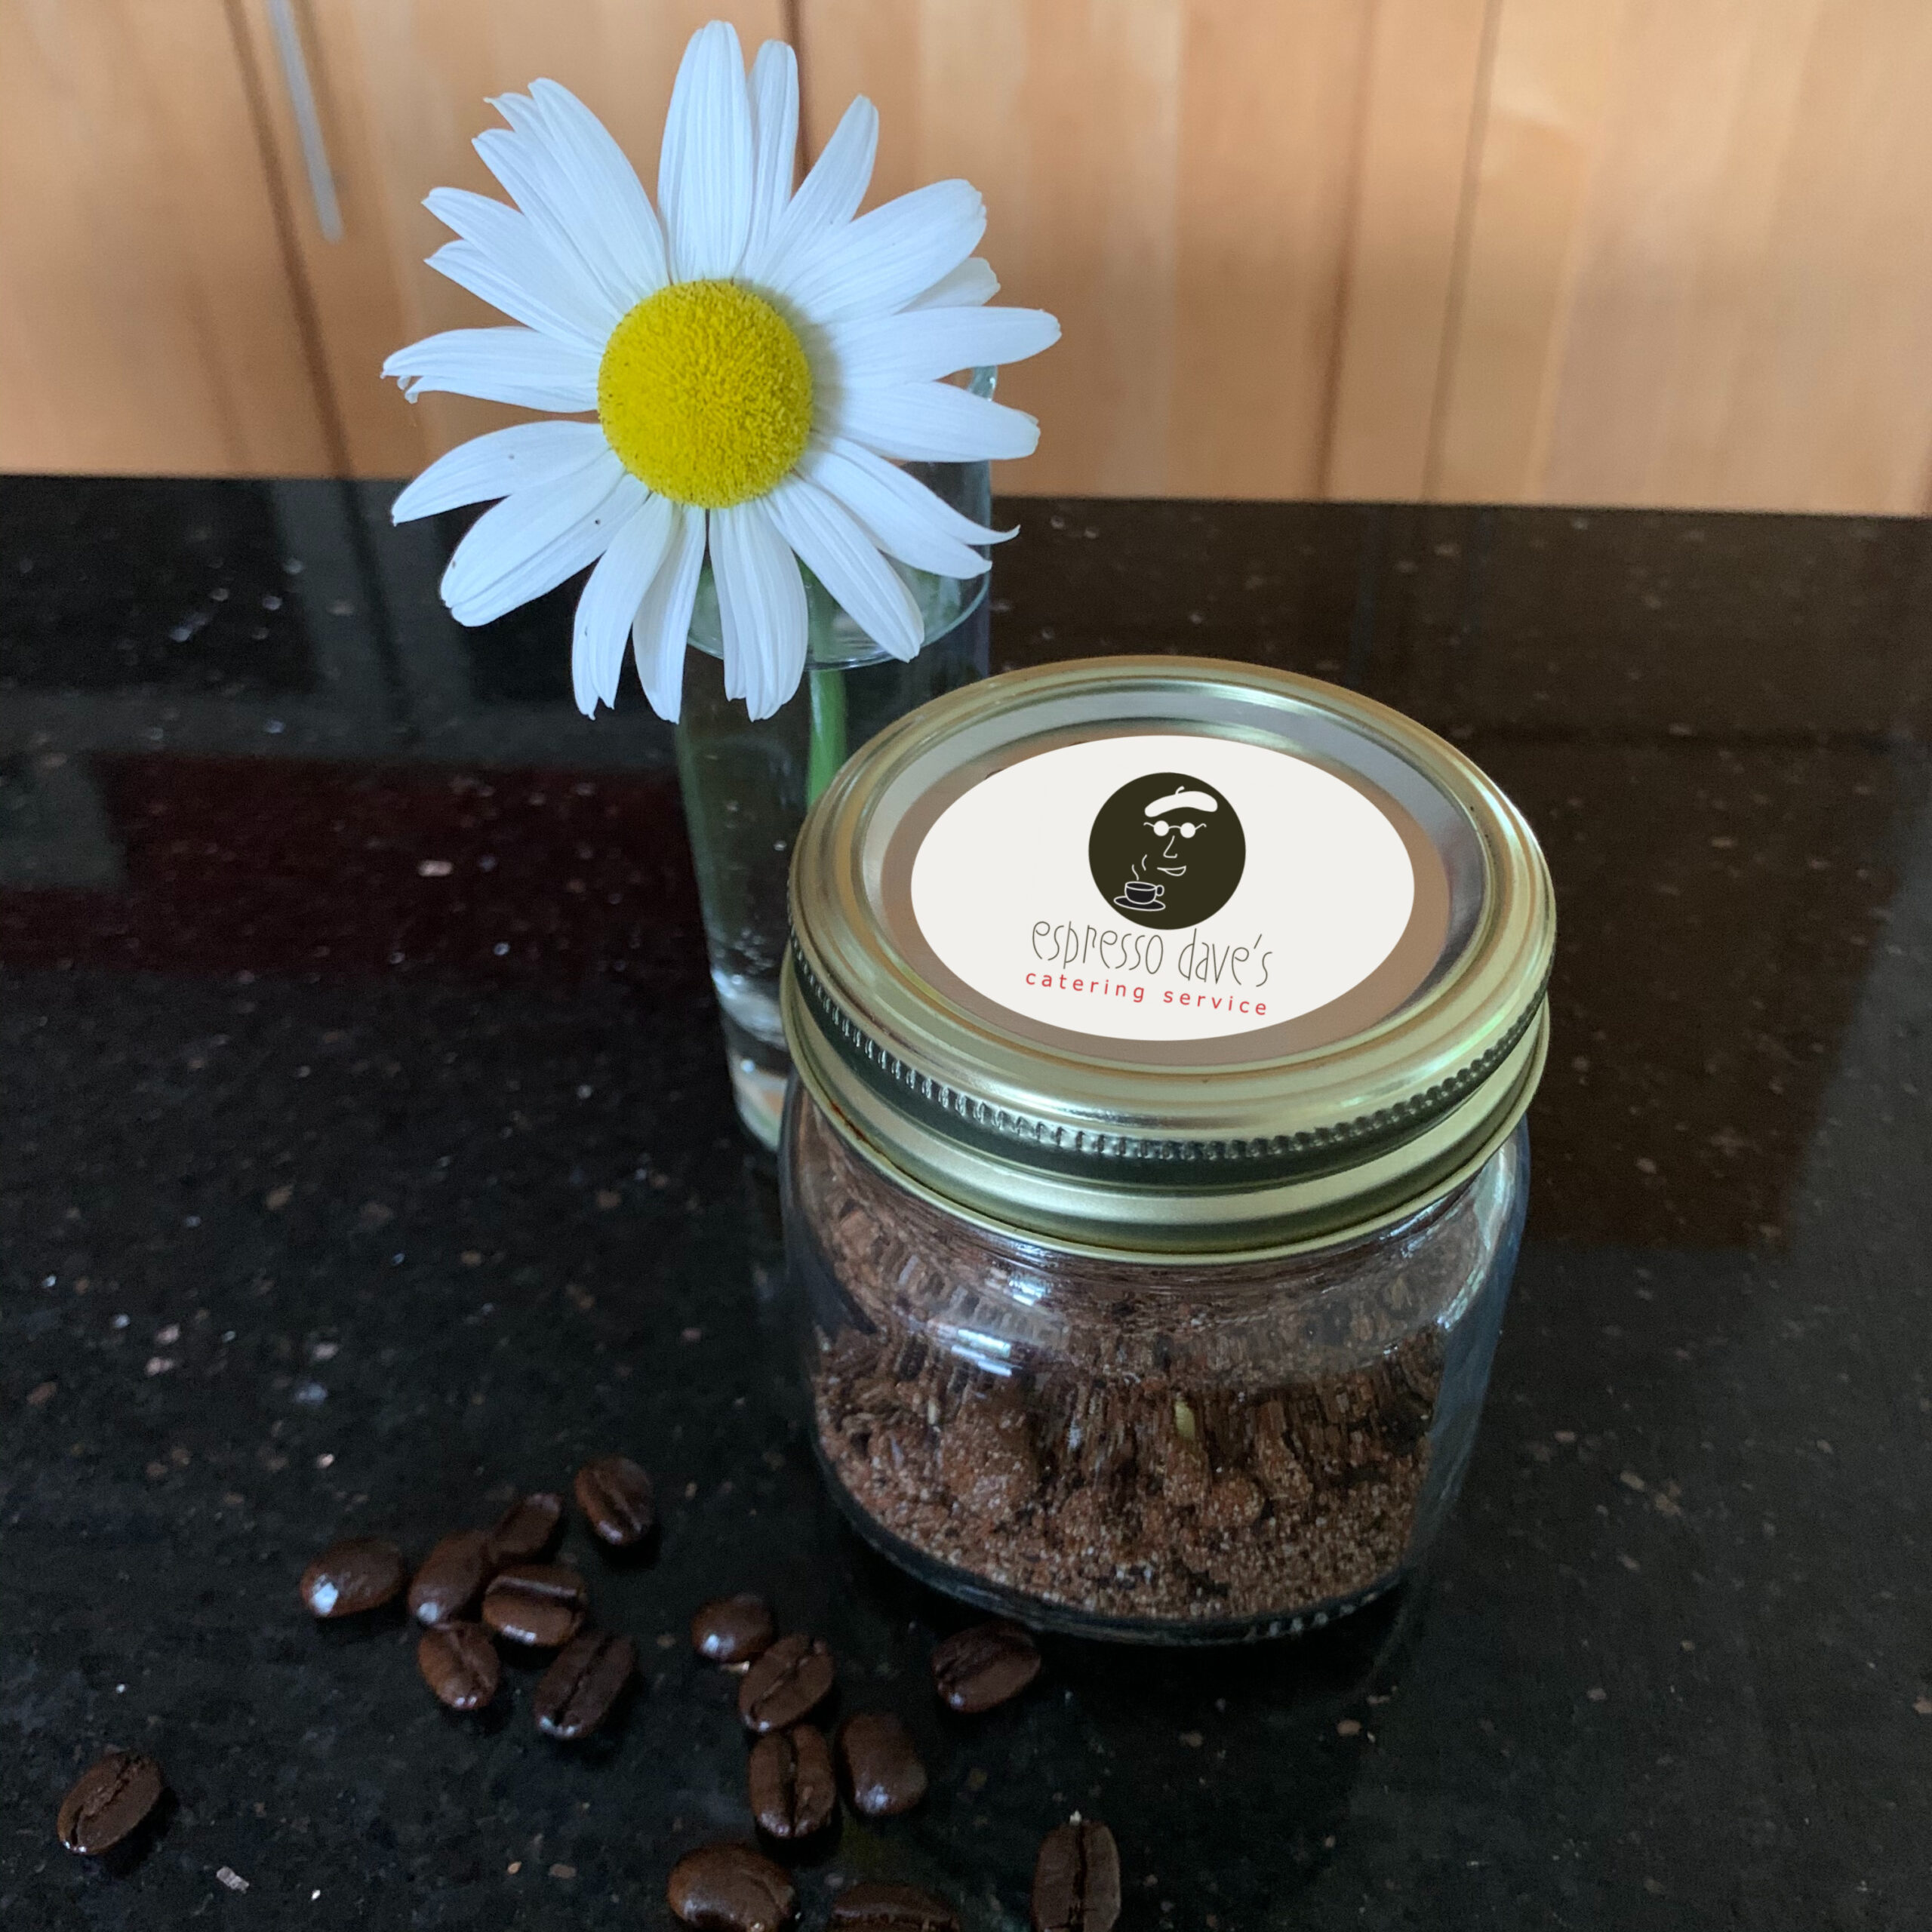 Here's an easy summer grilling recipe for Espresso Dave's favorite DIY coffee spice dry rub! Click here spice up your BBQ! www.espressodave.com #grilling #summerrecipe #BBQ #dryrub #homemade #summercookingrecipes #coffee